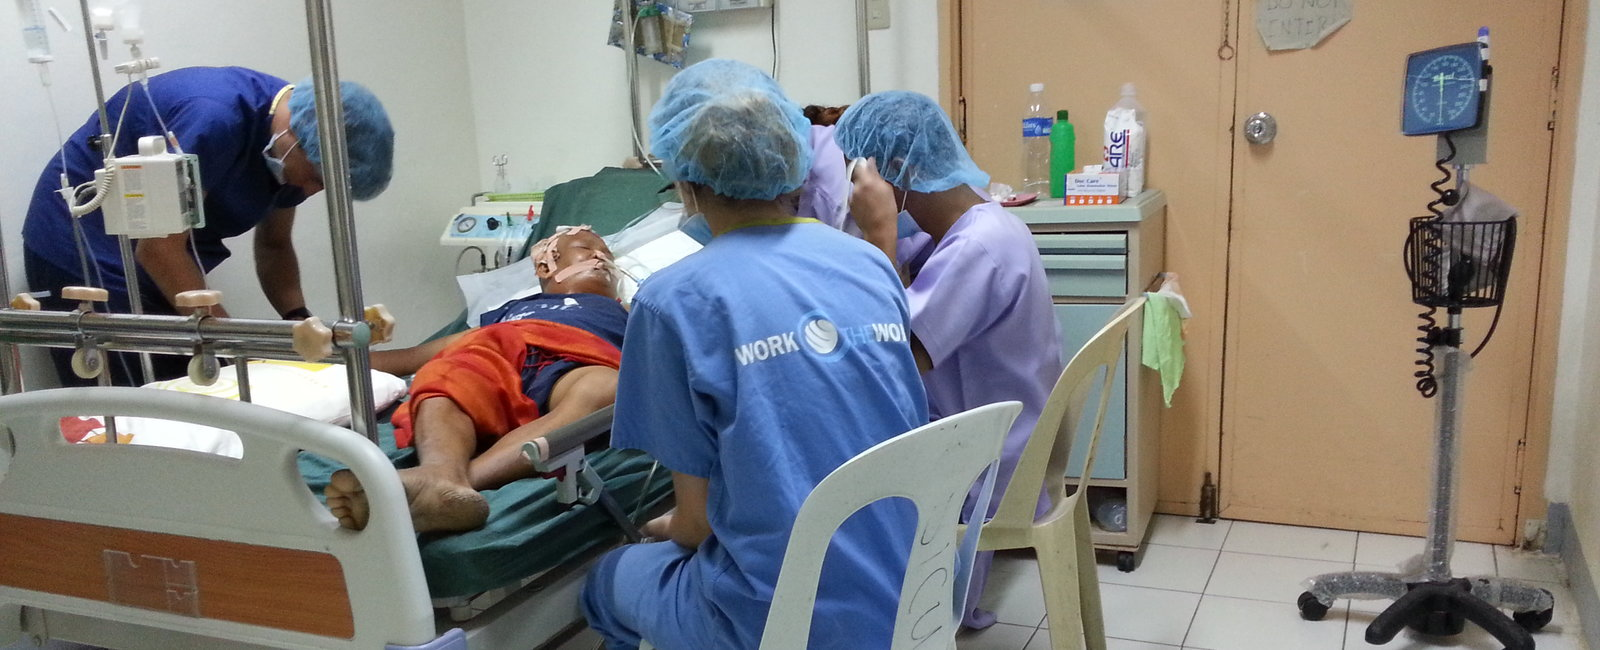 Michelle Bone - Medical Electives in Iloilo, the Philippines